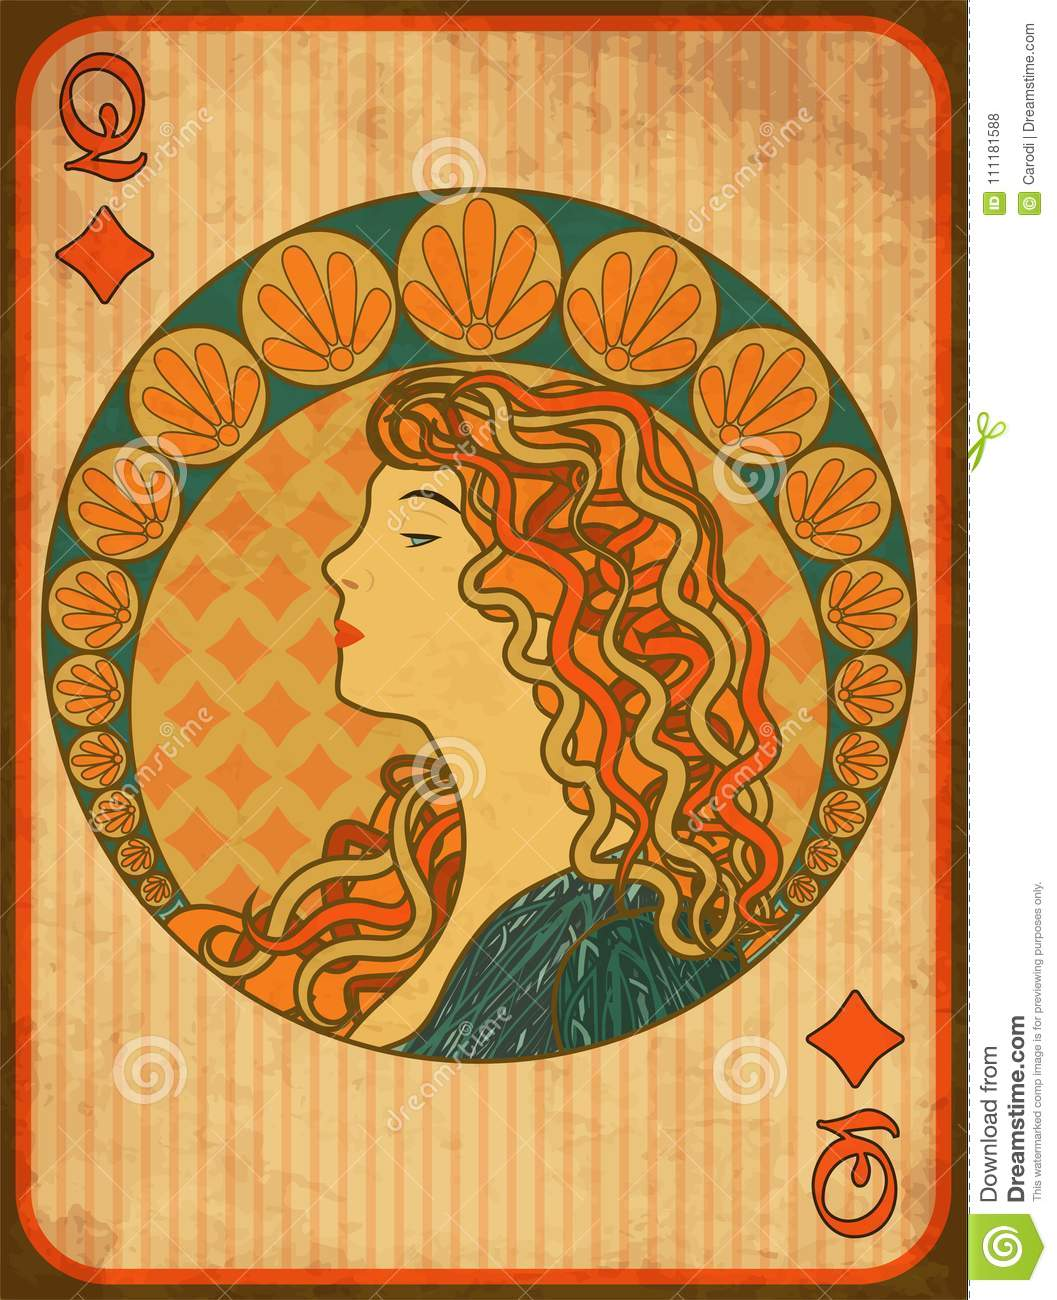 Queen poker diamonds card in art nouveau style